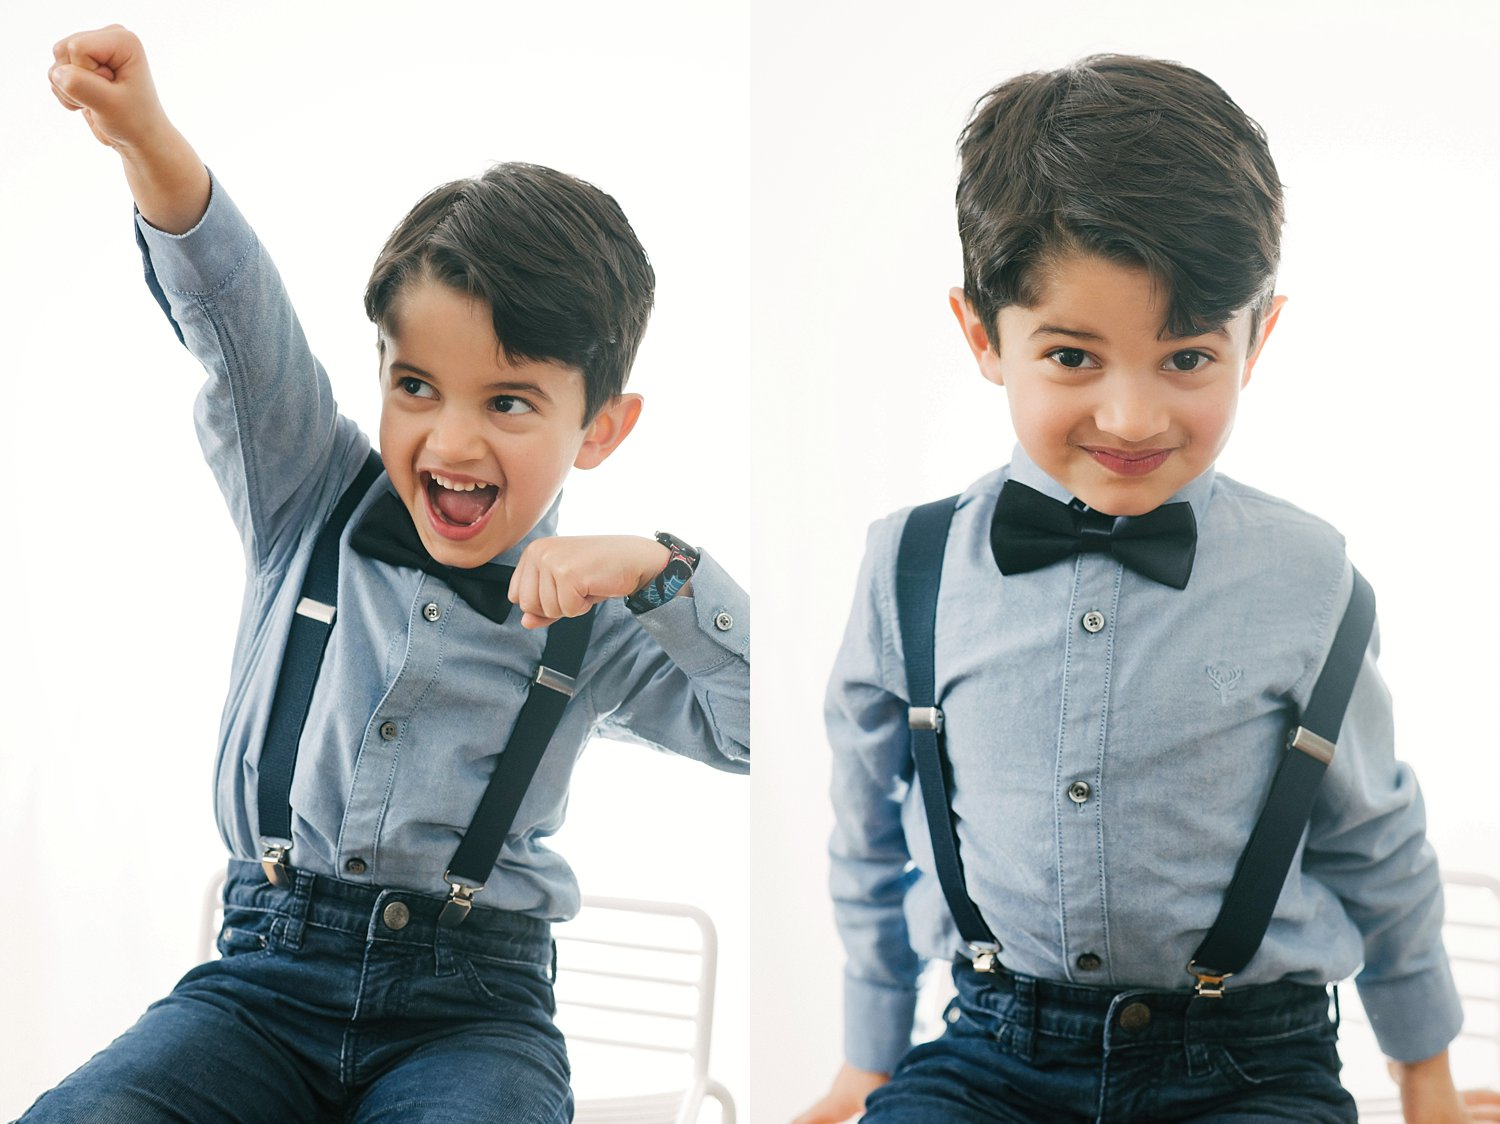 white background portrait of a boy - 6 Types of Portrait Backgrounds You Can Use for Your Images